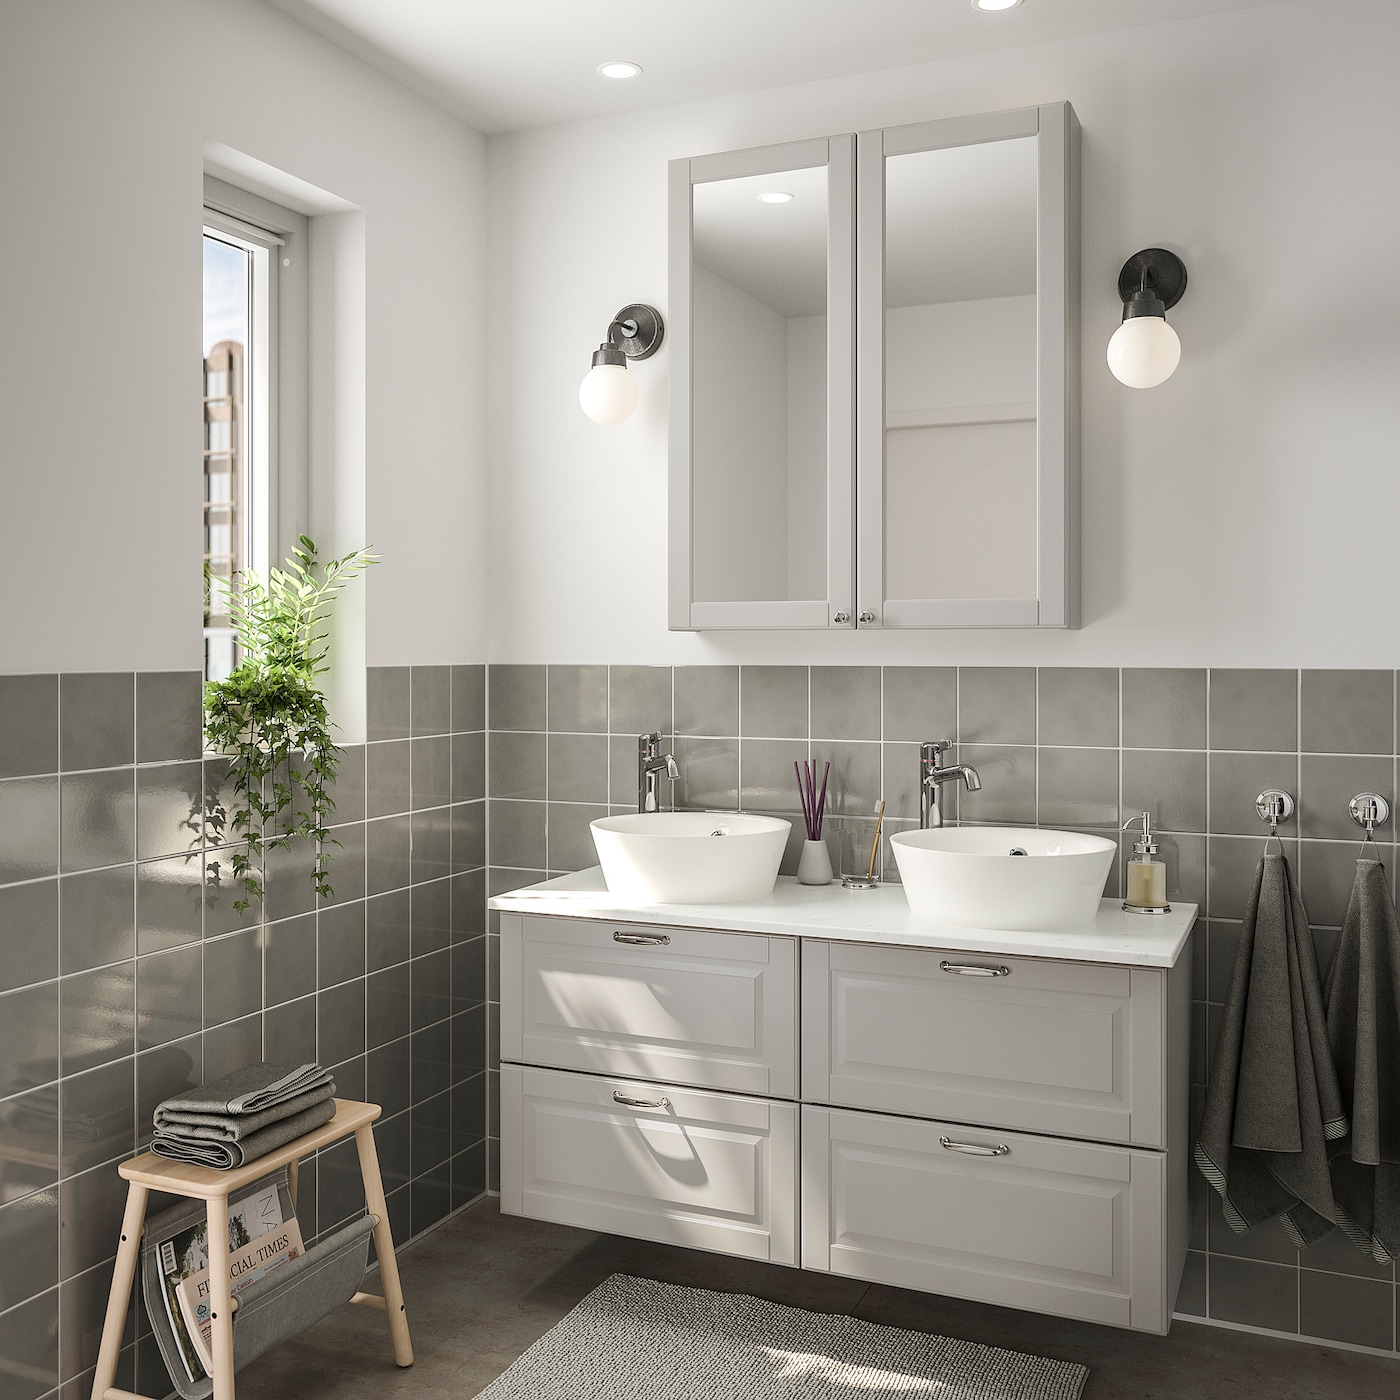 Godmorgon Tolken Kattevik Bathroom Furniture Set Of 7 Kasjon Light Grey Marble Effect Voxnan Tap Ikea